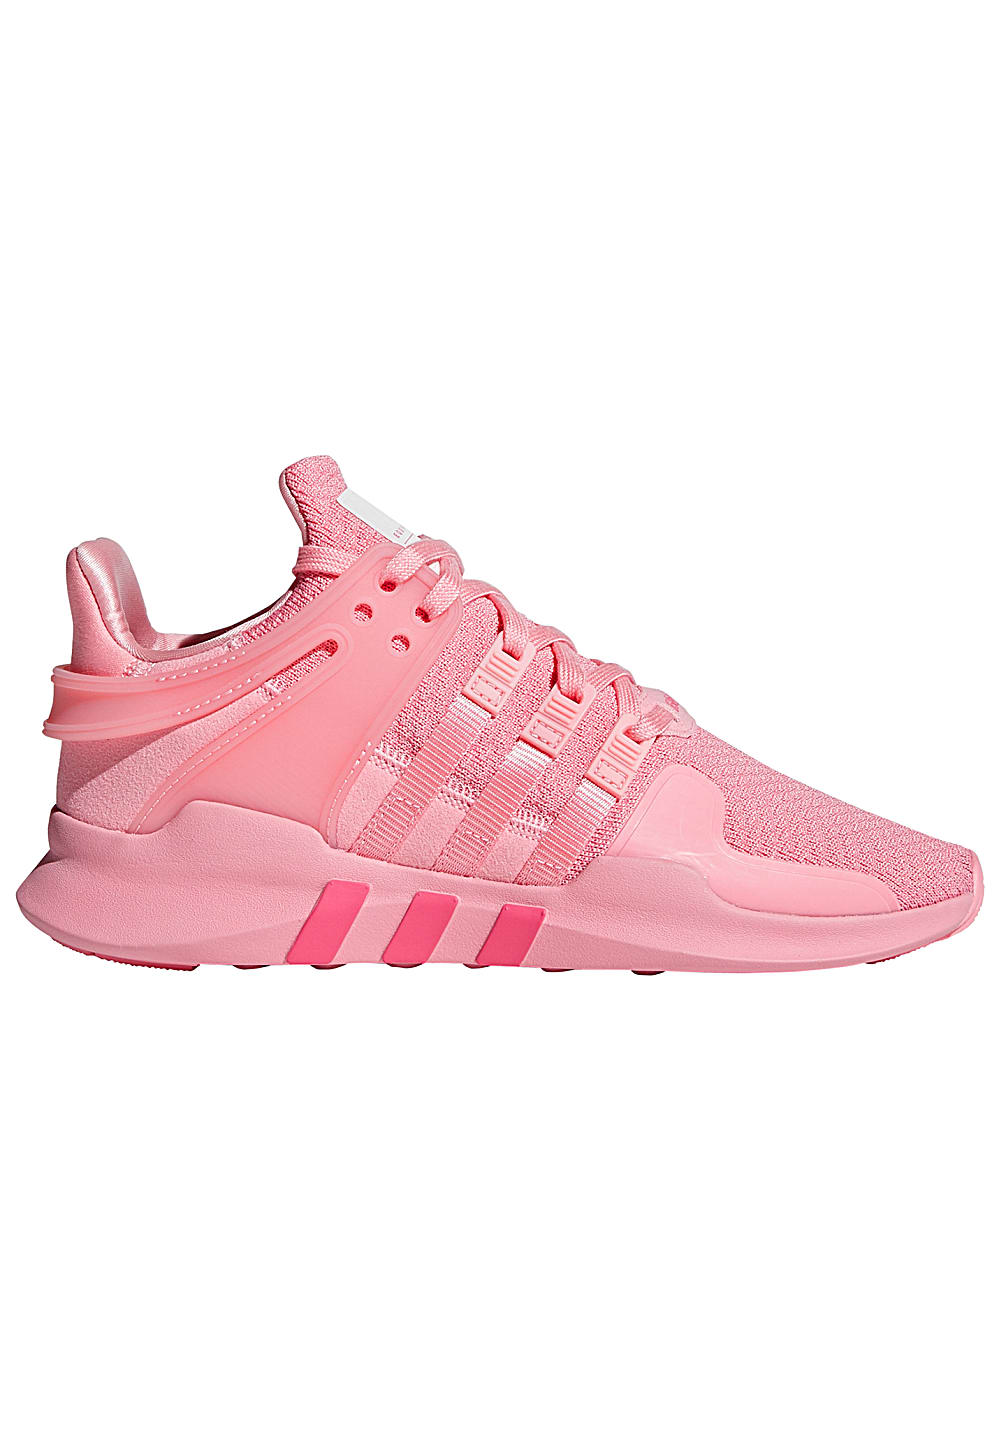 online store 931b2 d3520 ADIDAS ORIGINALS EQT Support Sk Pk - Sneakers for Women - Pink